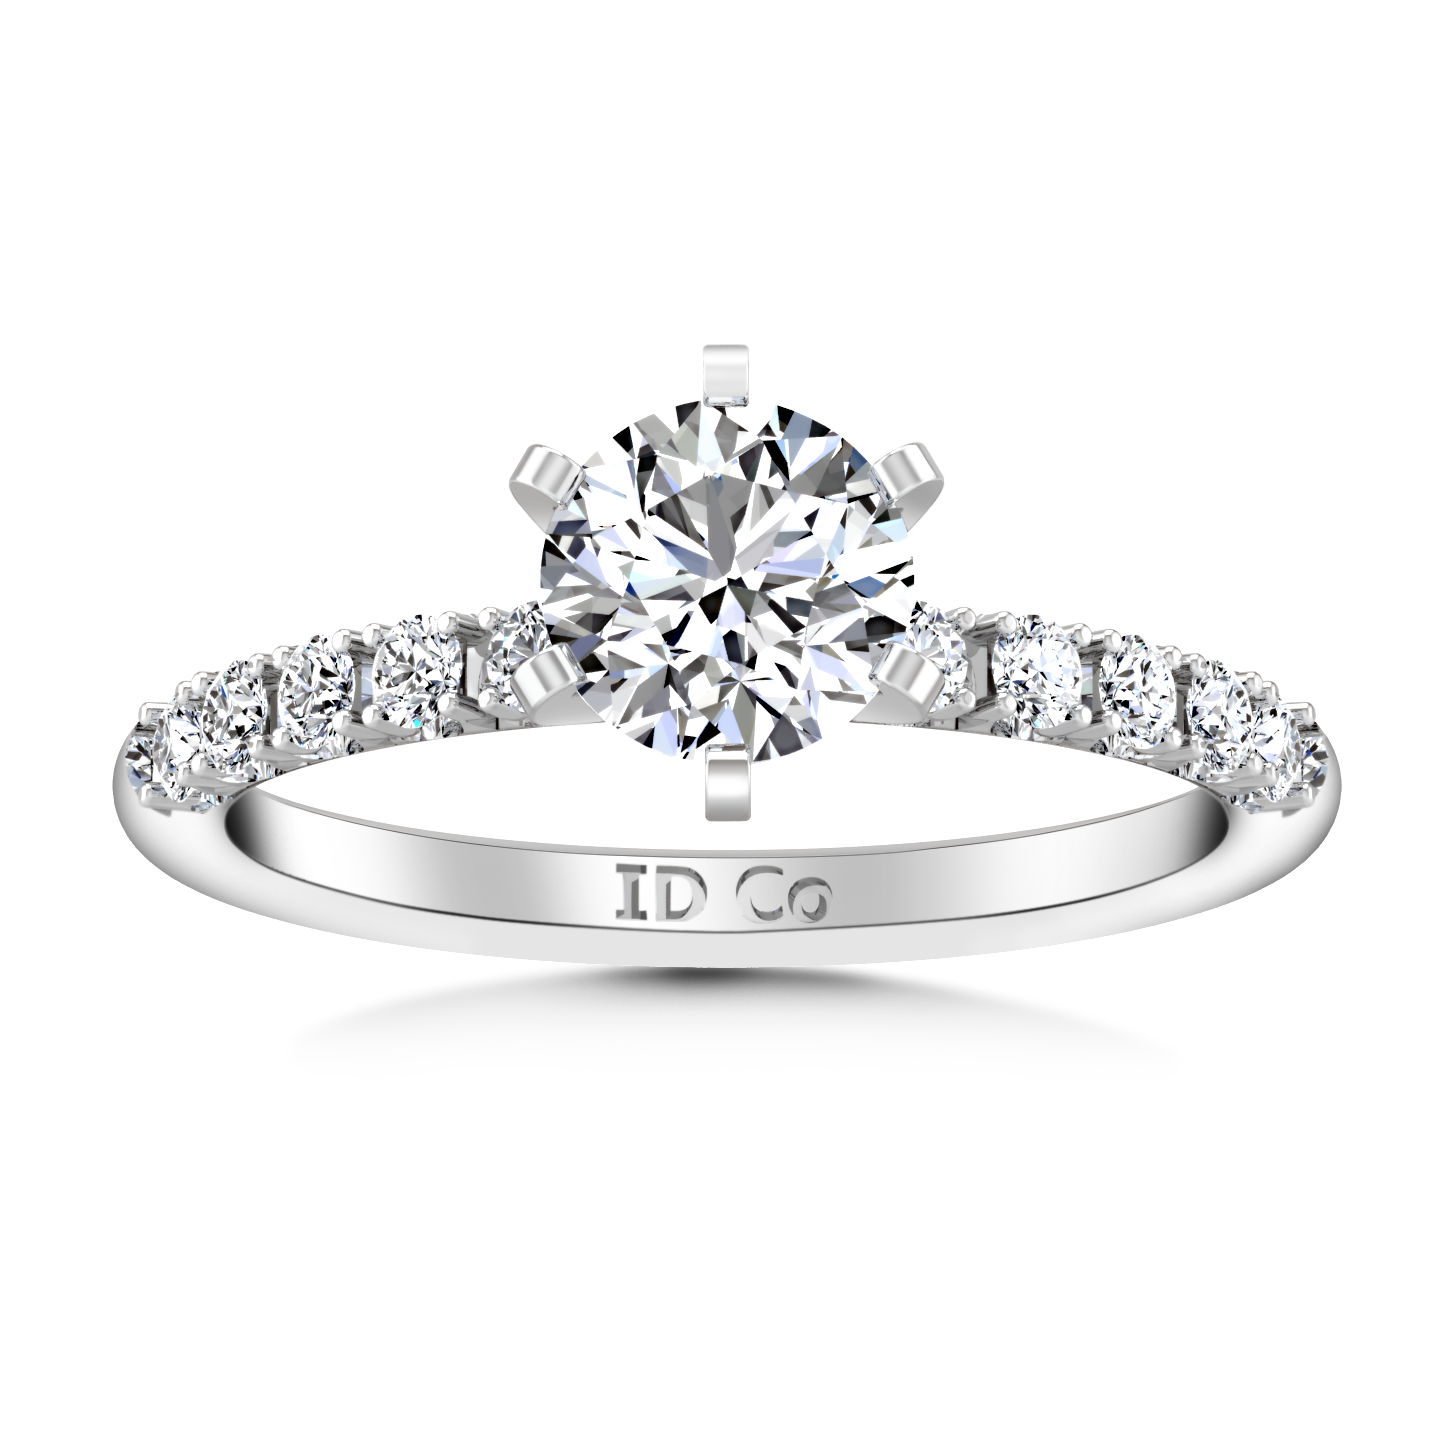 diamond engagement solitaire photograph fresh band did man my carat wedding wonderful rings glamorous of thin marquise ring with